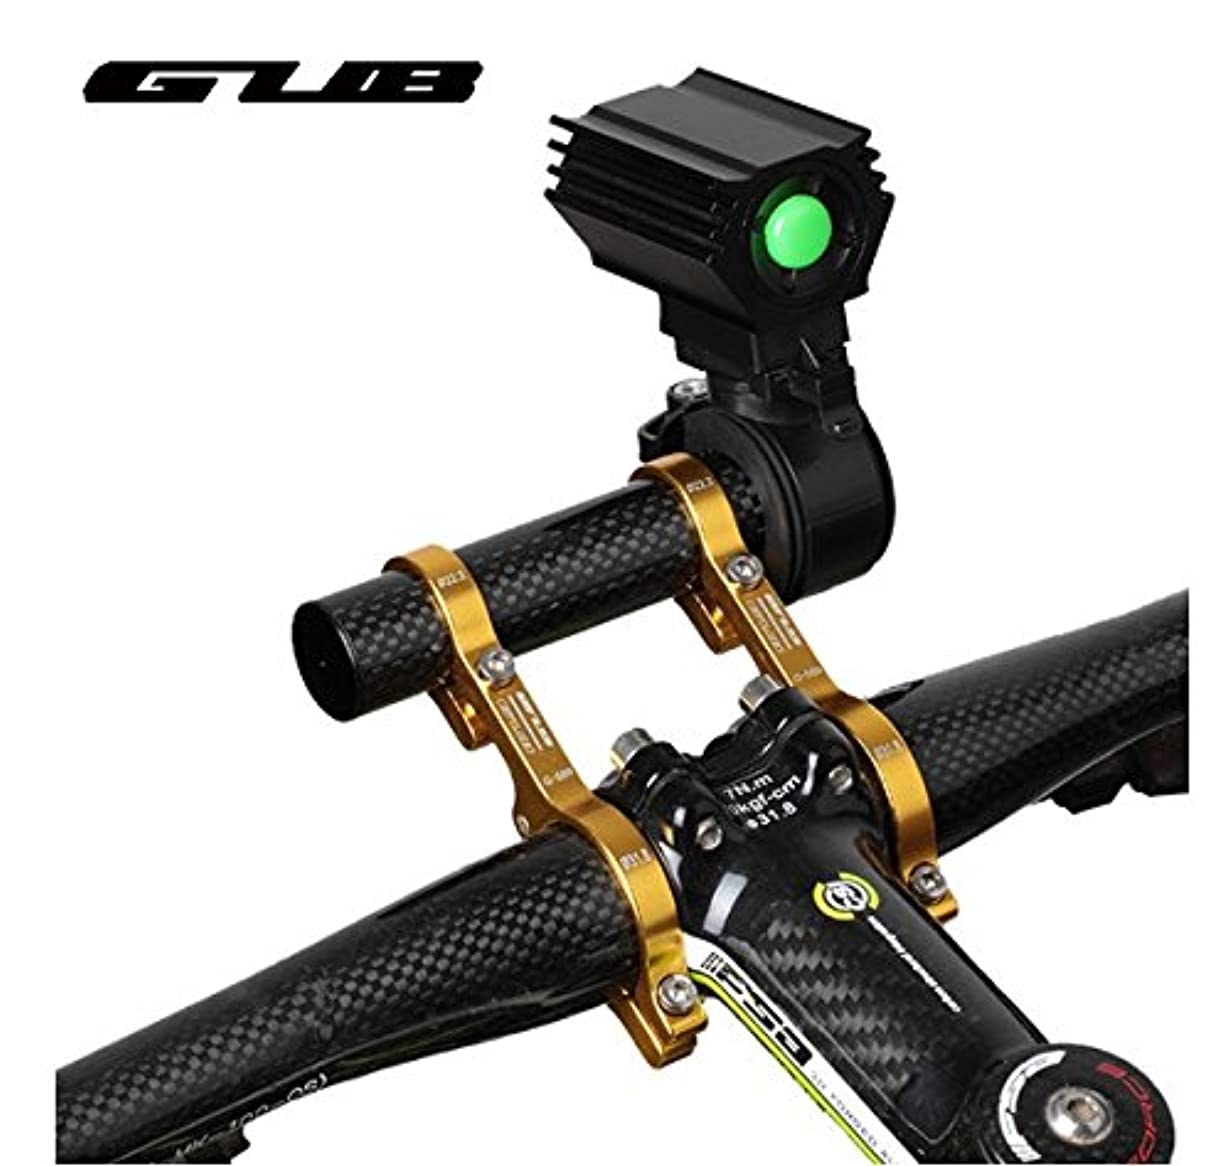 反響するクラック基礎GUB 559 full carbon Fiber bicycle Handlebar extenders road mountain bike aluminum Alloy bicycle headlight flashlight Lamp Holder